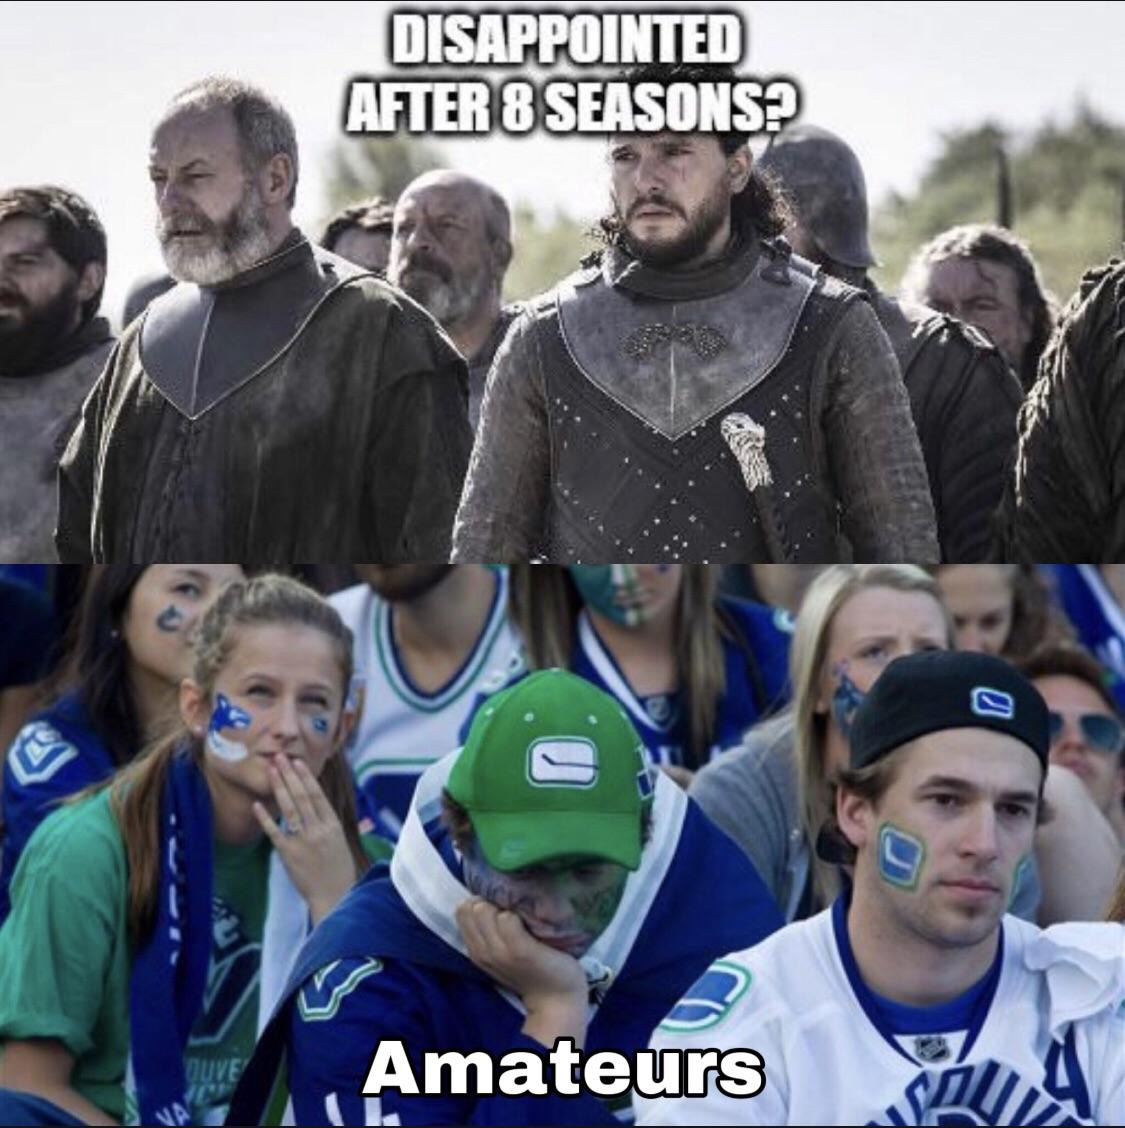 Disappointed?